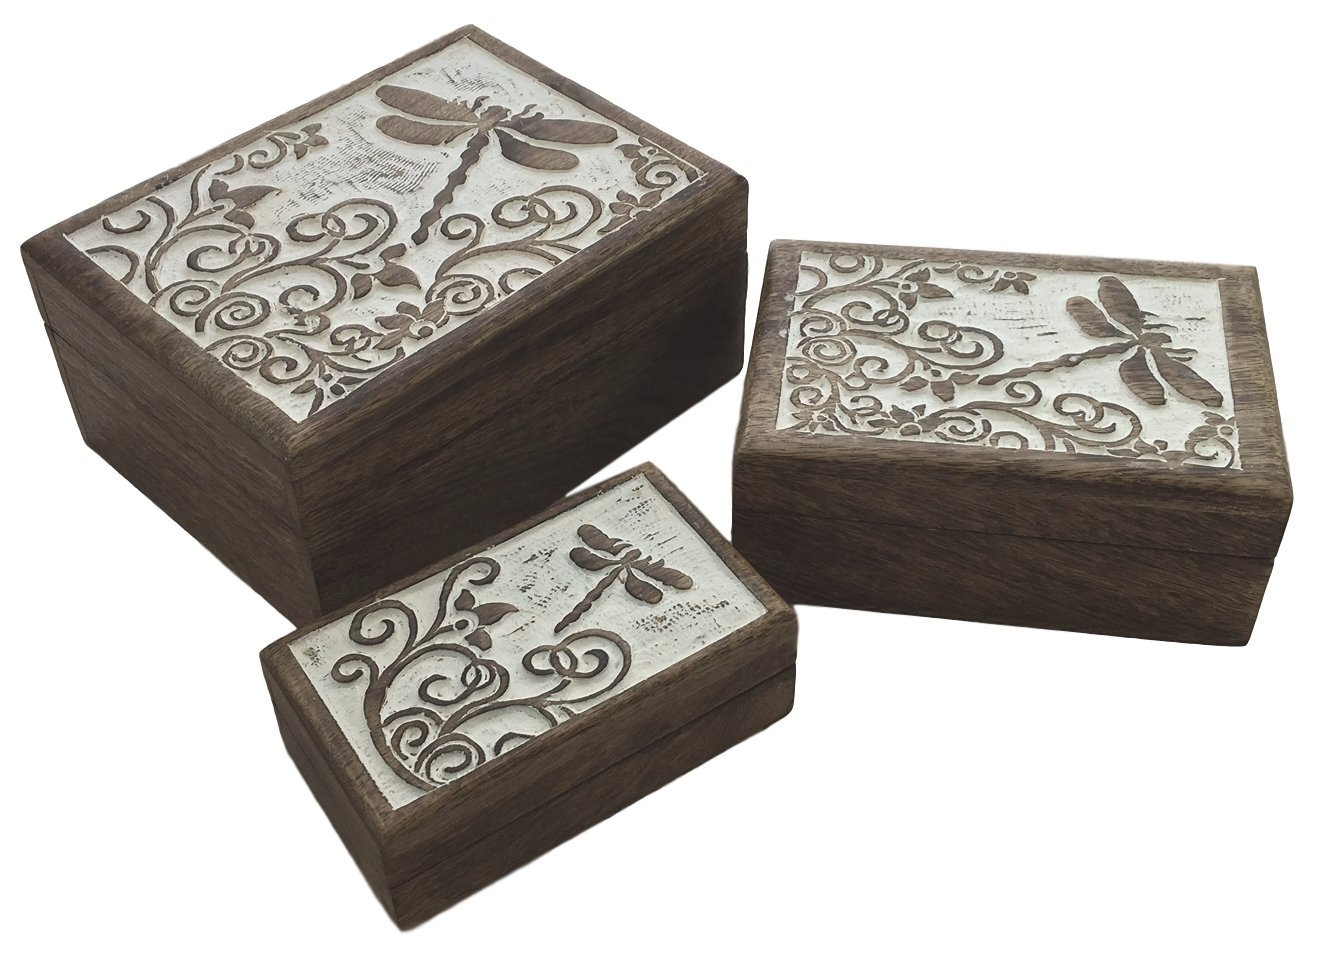 Set of 3 - Dragonfly Box - Shabby Chic India Mango Wood Rustic Decorative